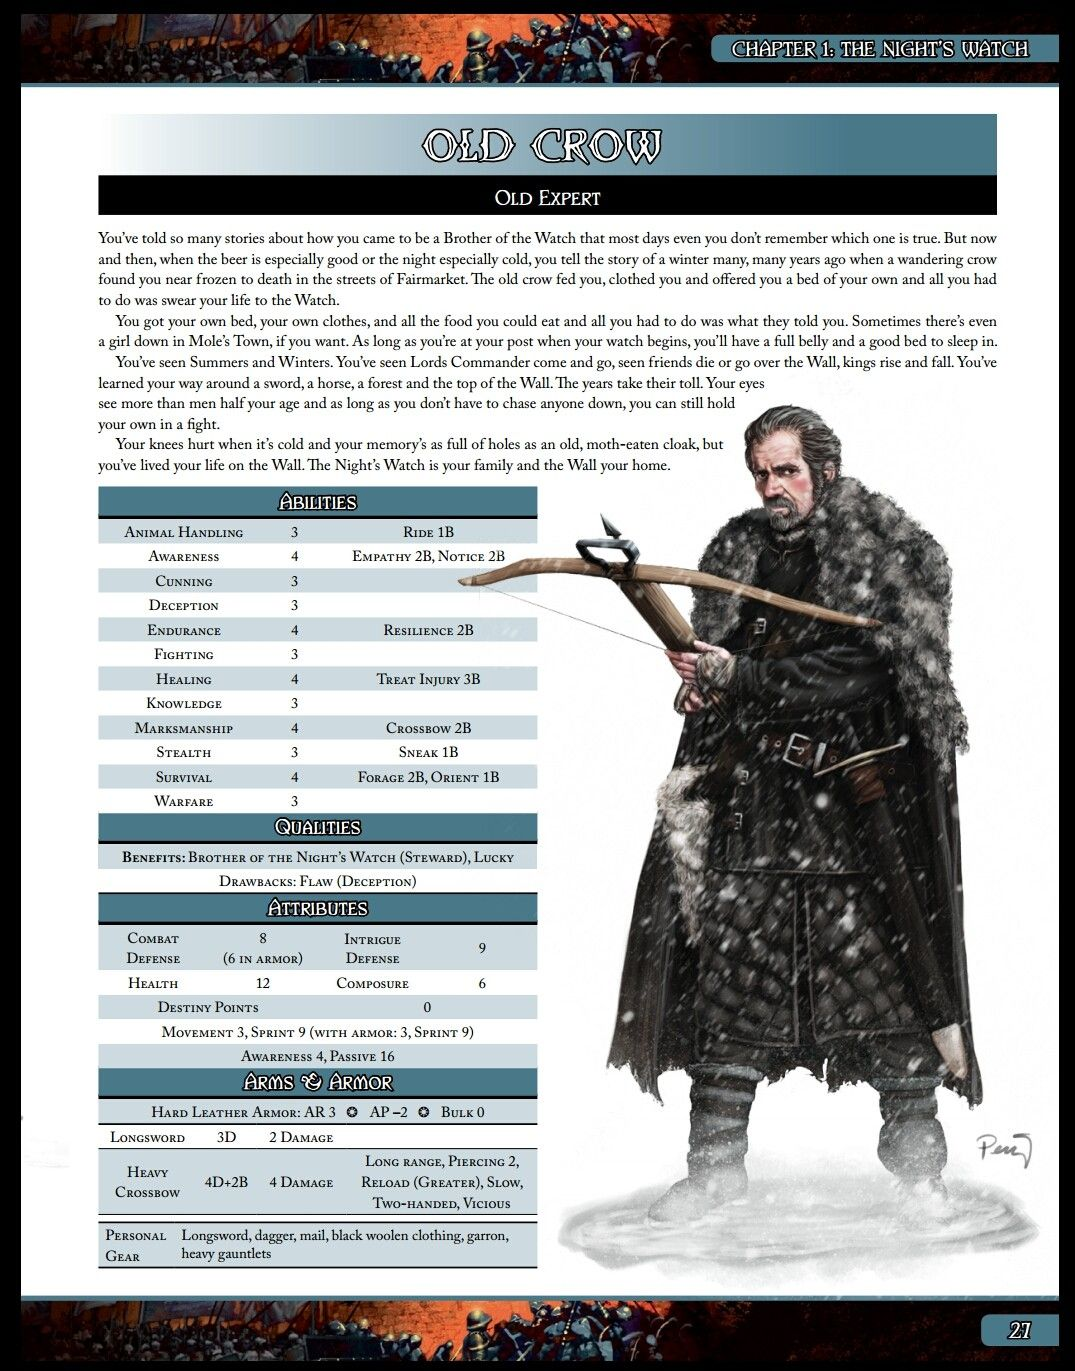 Old Crow (A Song of Ice and Fire Roleplaying Night's